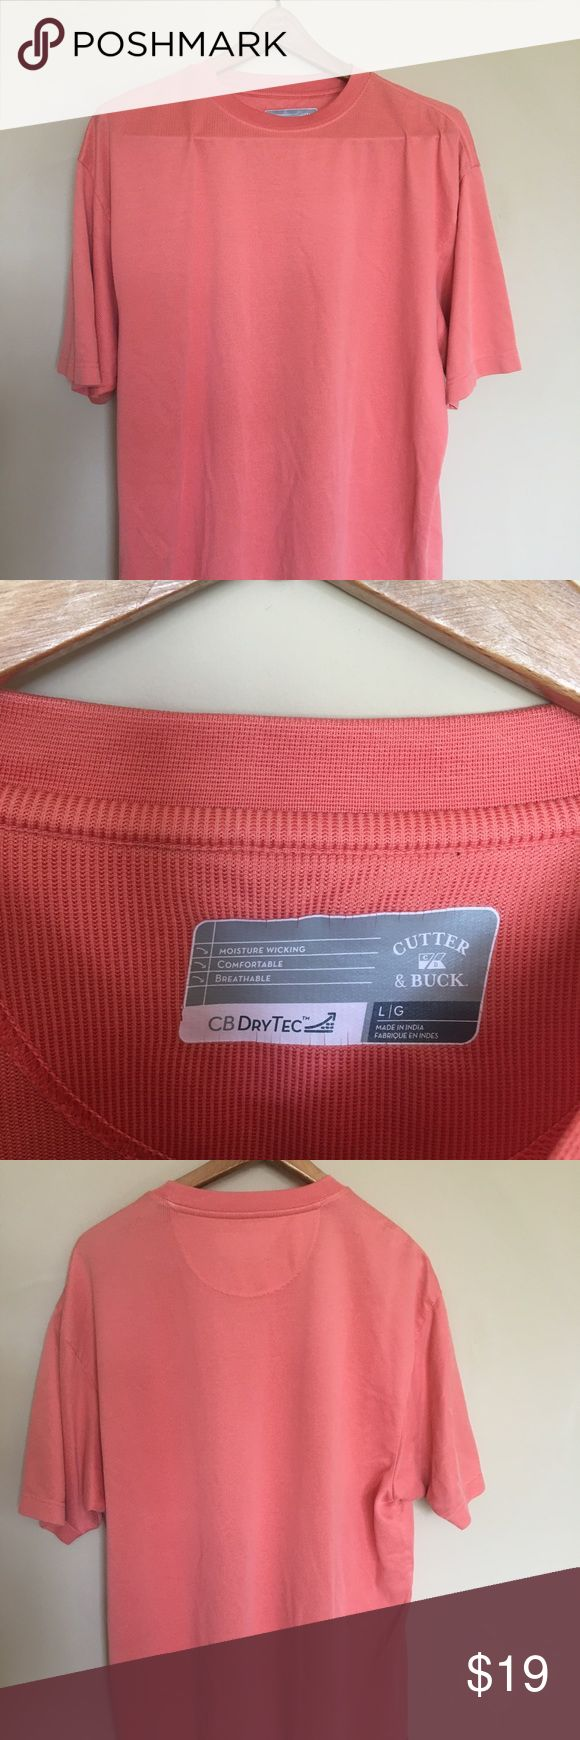 🔥Cutter&Buck moisture wicking T-shirt🔥 🔥This is a salmon colored, sleek and stylish T great for literally any occasion. Moisture wicking, breathable, and comfortable were the focus for this top and I think they came through, definitely one of my favorites and I think if you spend a little time in it you will agree 😄🔥🔥 Cutter & Buck Shirts Tees - Short Sleeve